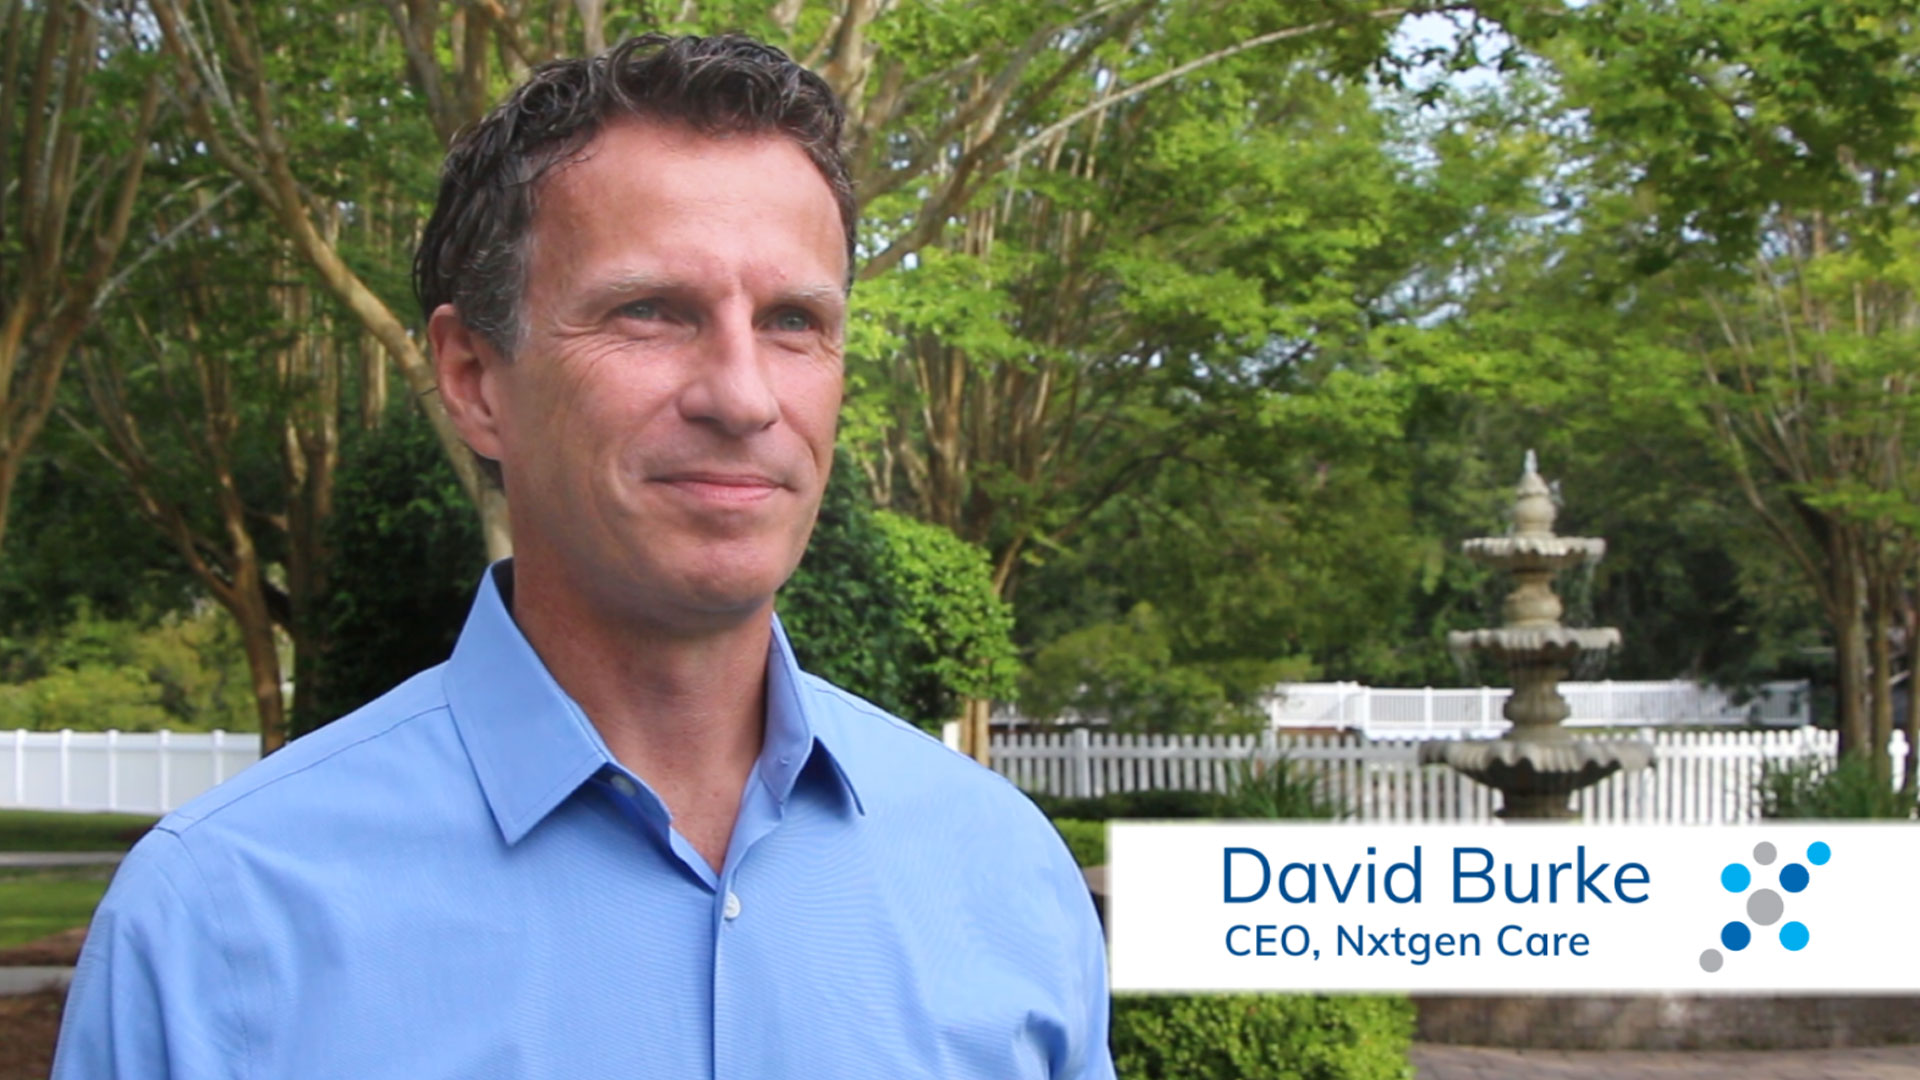 David Burke, CEO Nxtgen Care - business intelligence & analytics